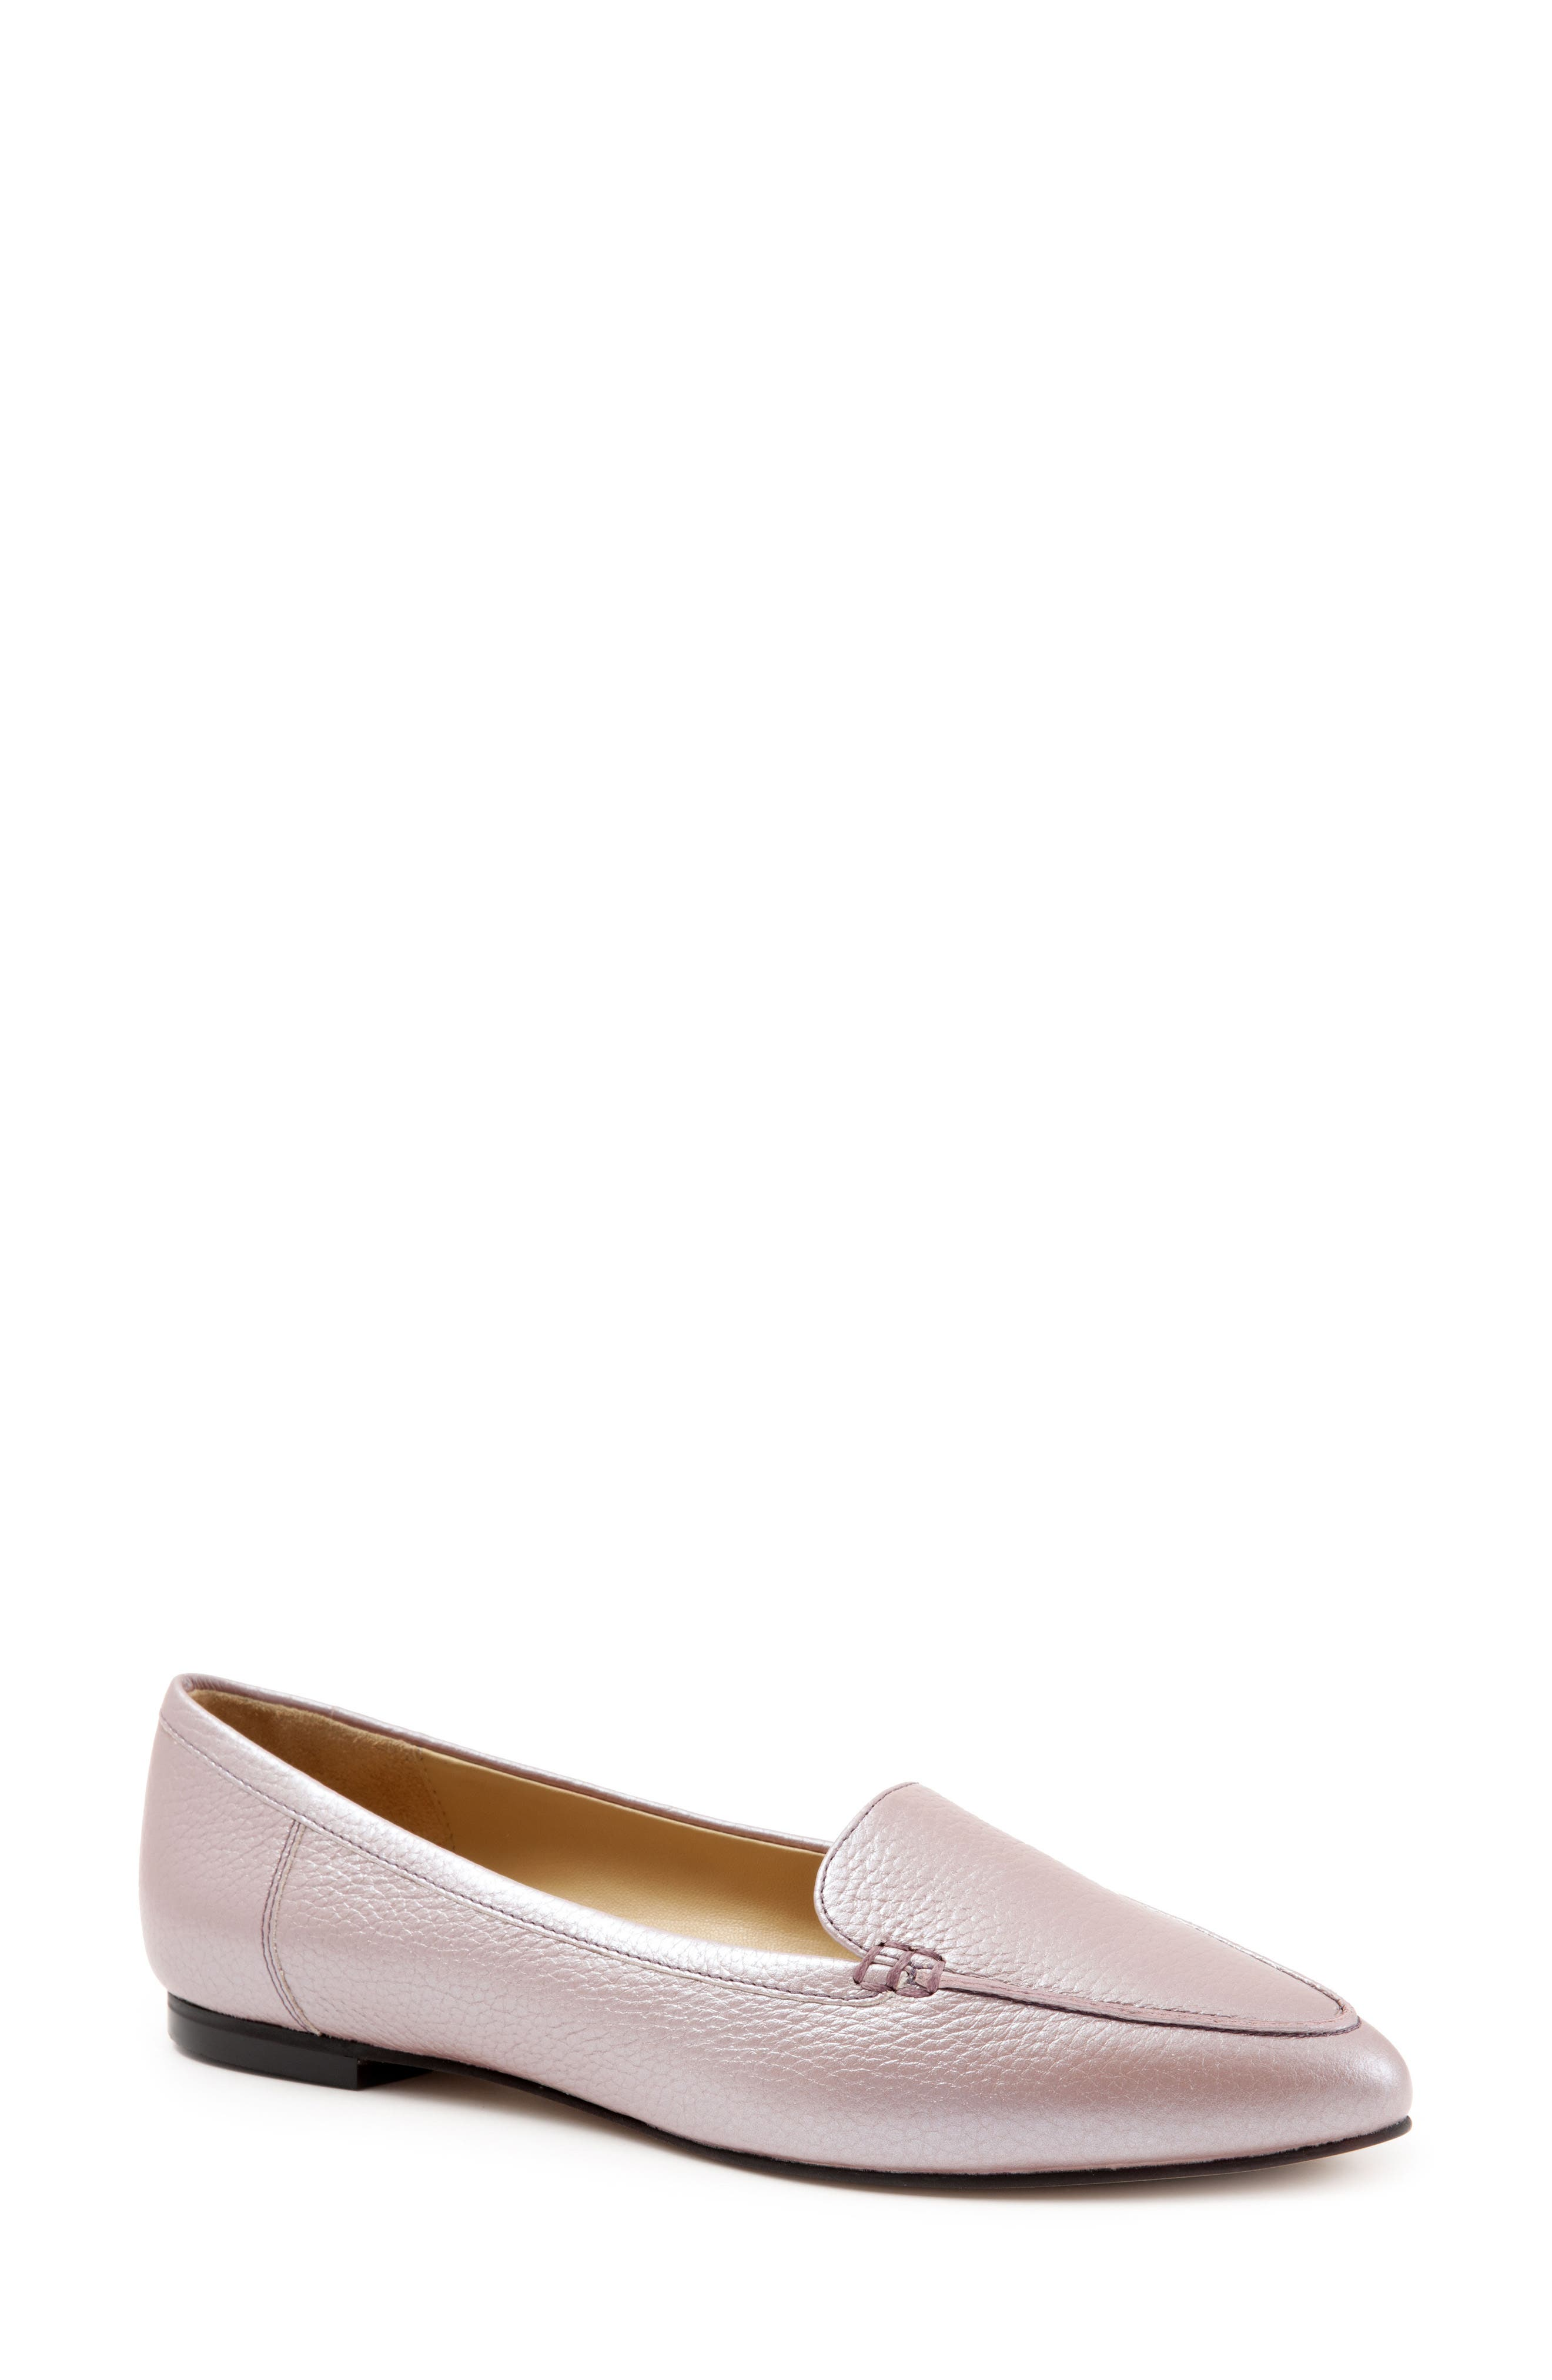 Trotters Ember Flat, Pink